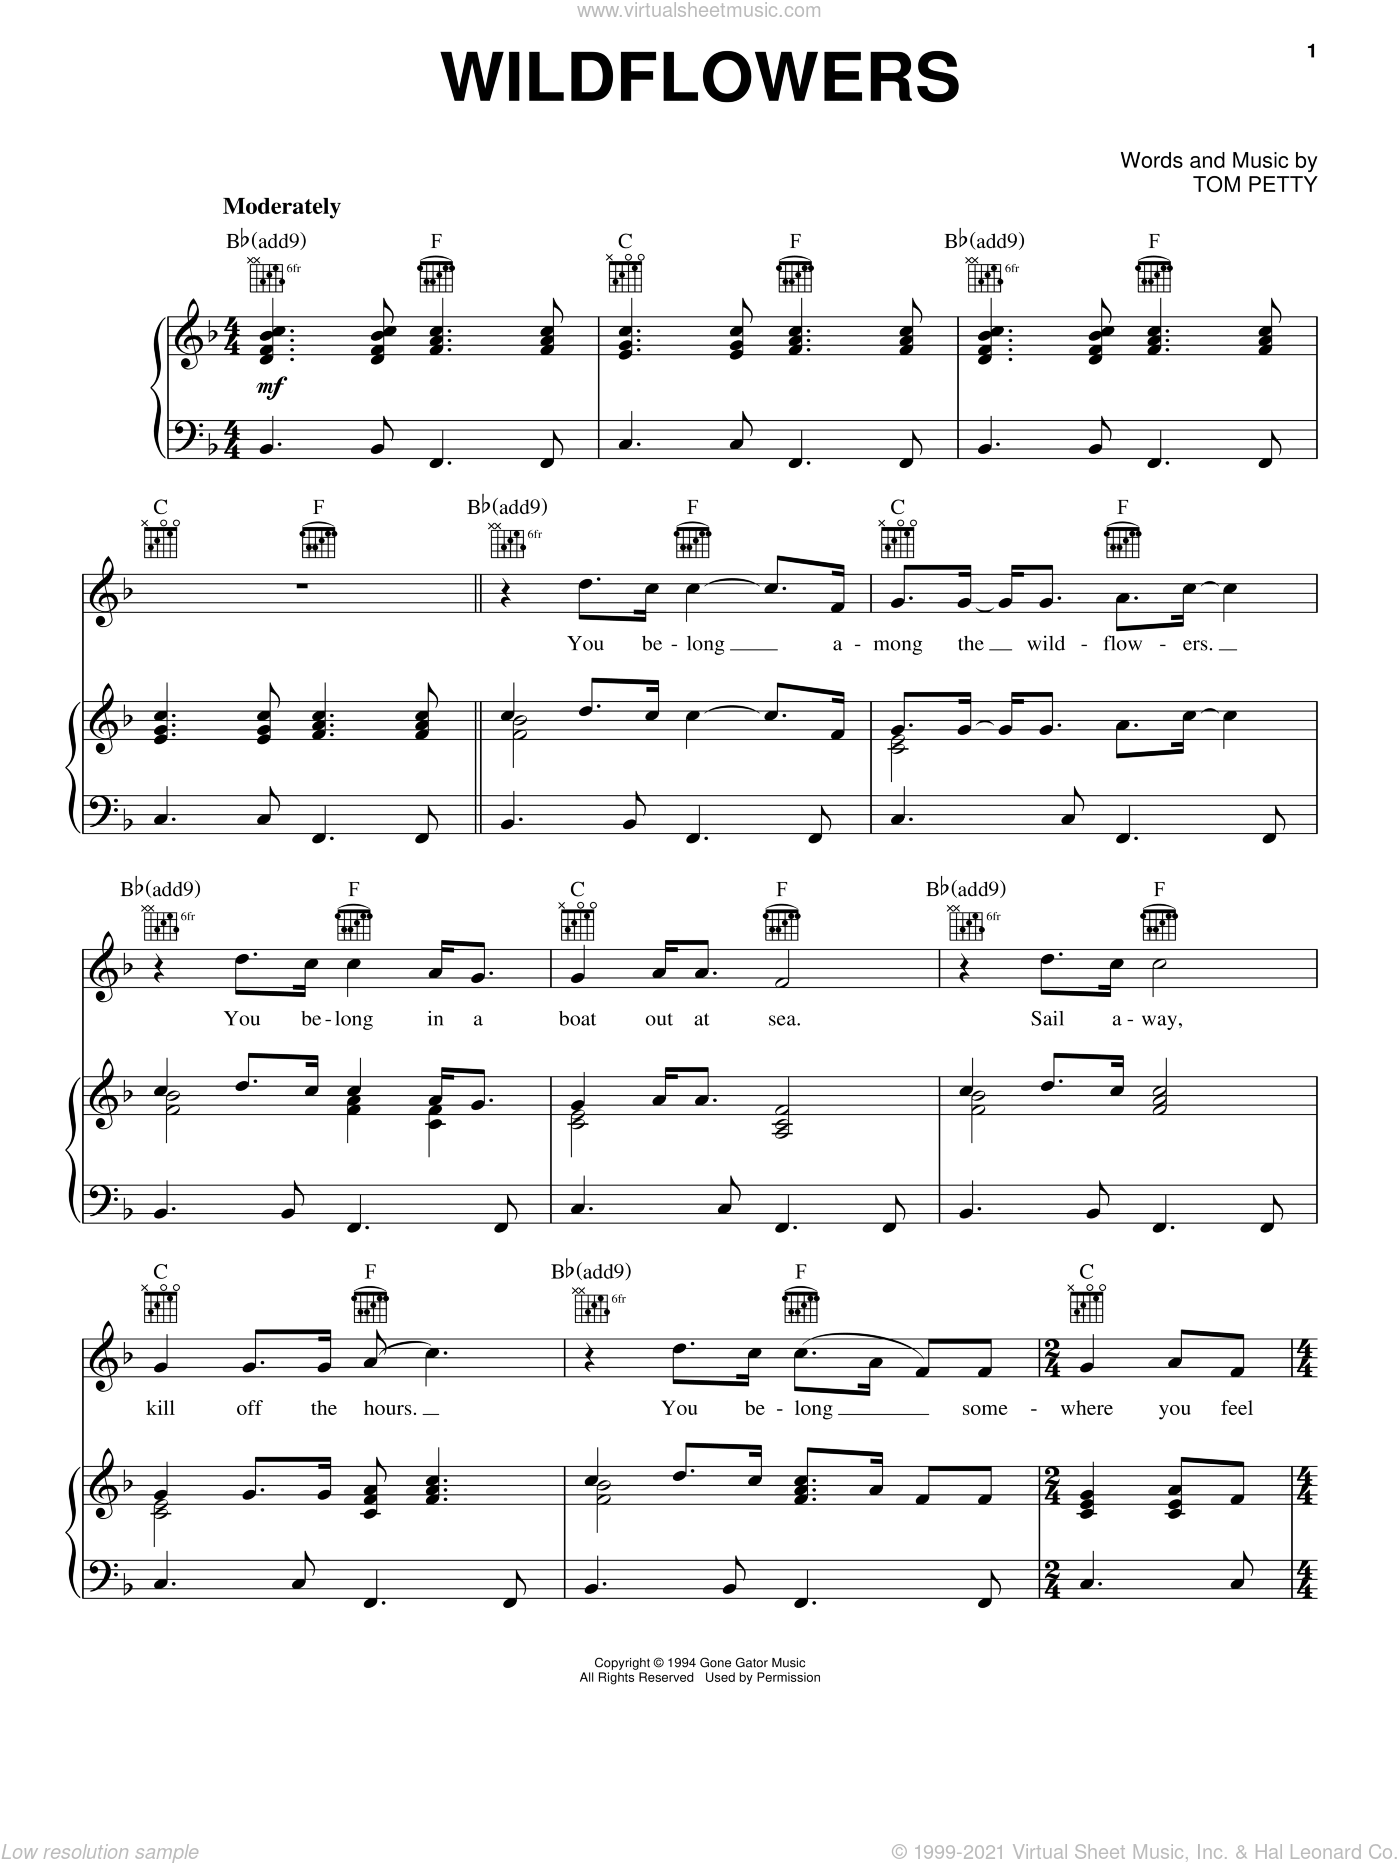 Wildflowers sheet music for voice, piano or guitar by Tom Petty, intermediate skill level